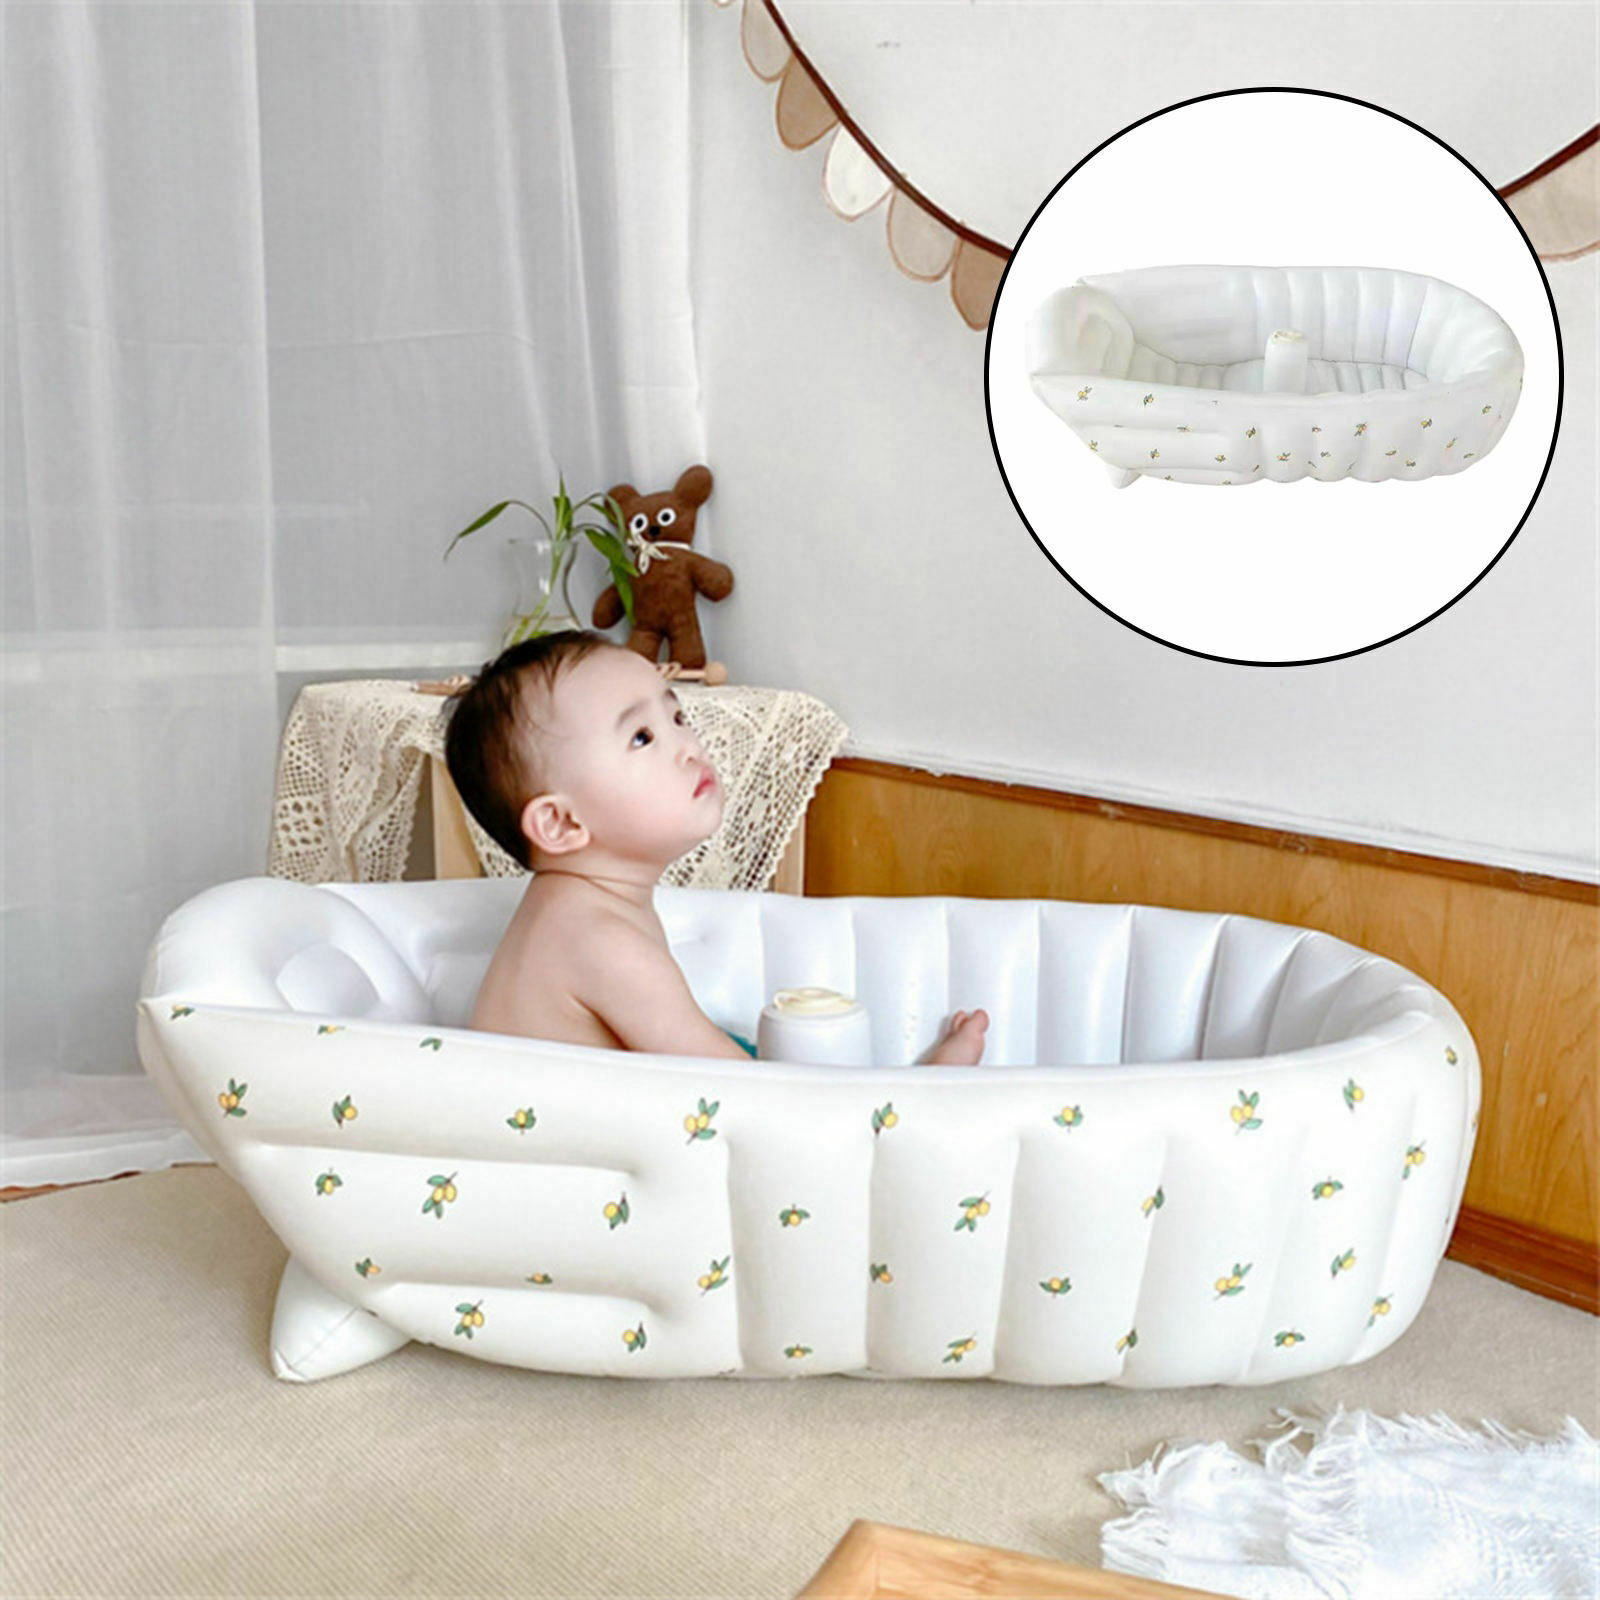 Inflatable Bathtub Support The Back Seat Raised Section Drain Plug for Baby